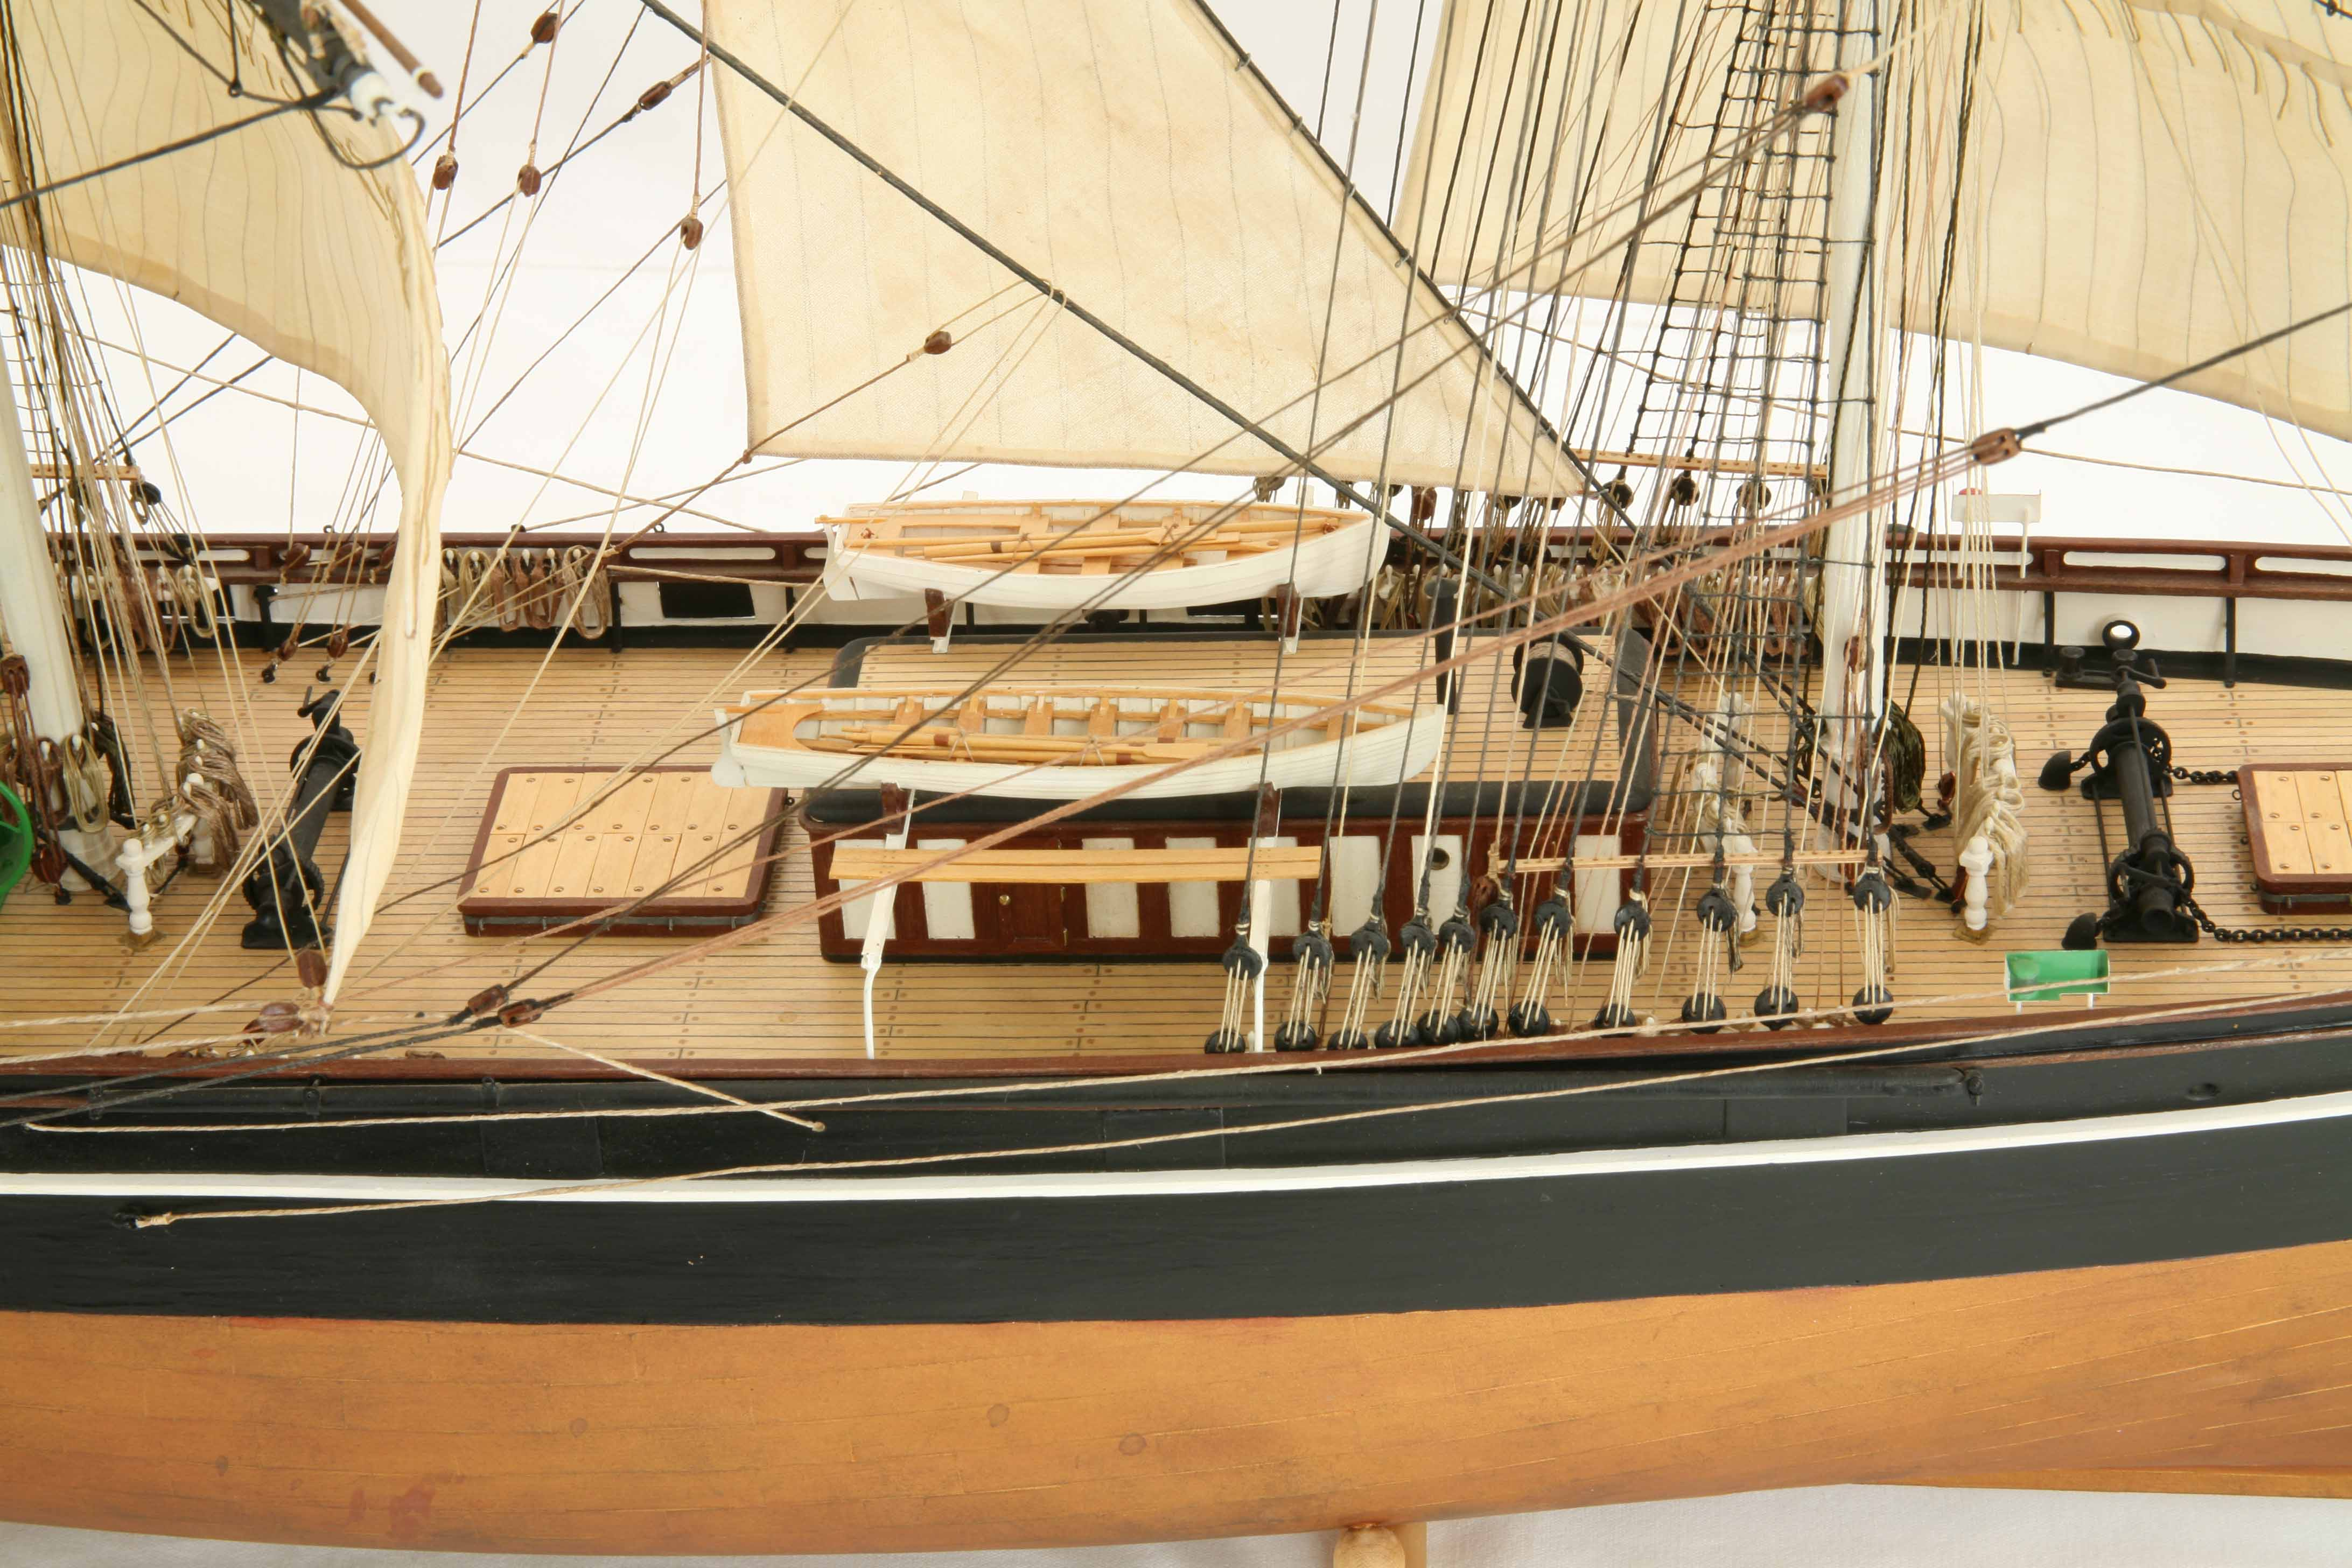 Photos ship model clipper Cutty Sark, close views